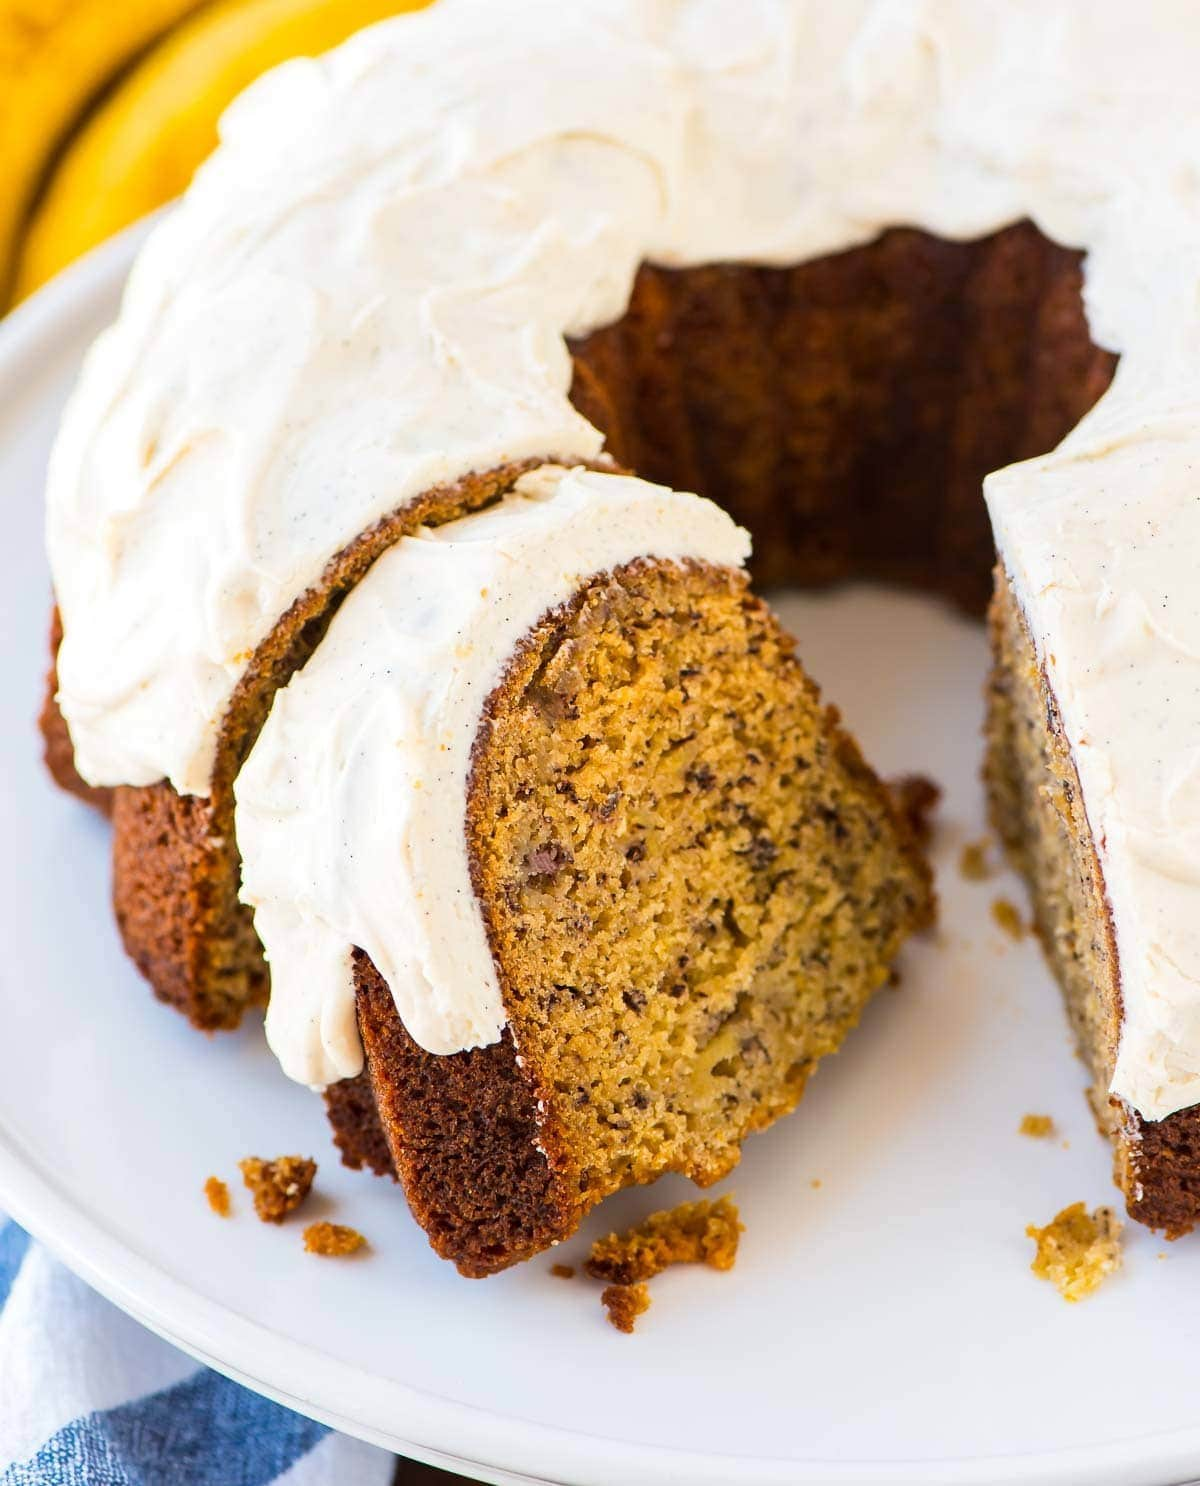 Exceptionally moist, flavorful Banana Bundt Cake with Vanilla Bean Cream Cheese Glaze. Easy recipe made with Greek yogurt, so it's a little healthy but it still tastes indulgent. This is the BEST banana cake you'll ever bake! Recipe at wellplated.com | @wellplated